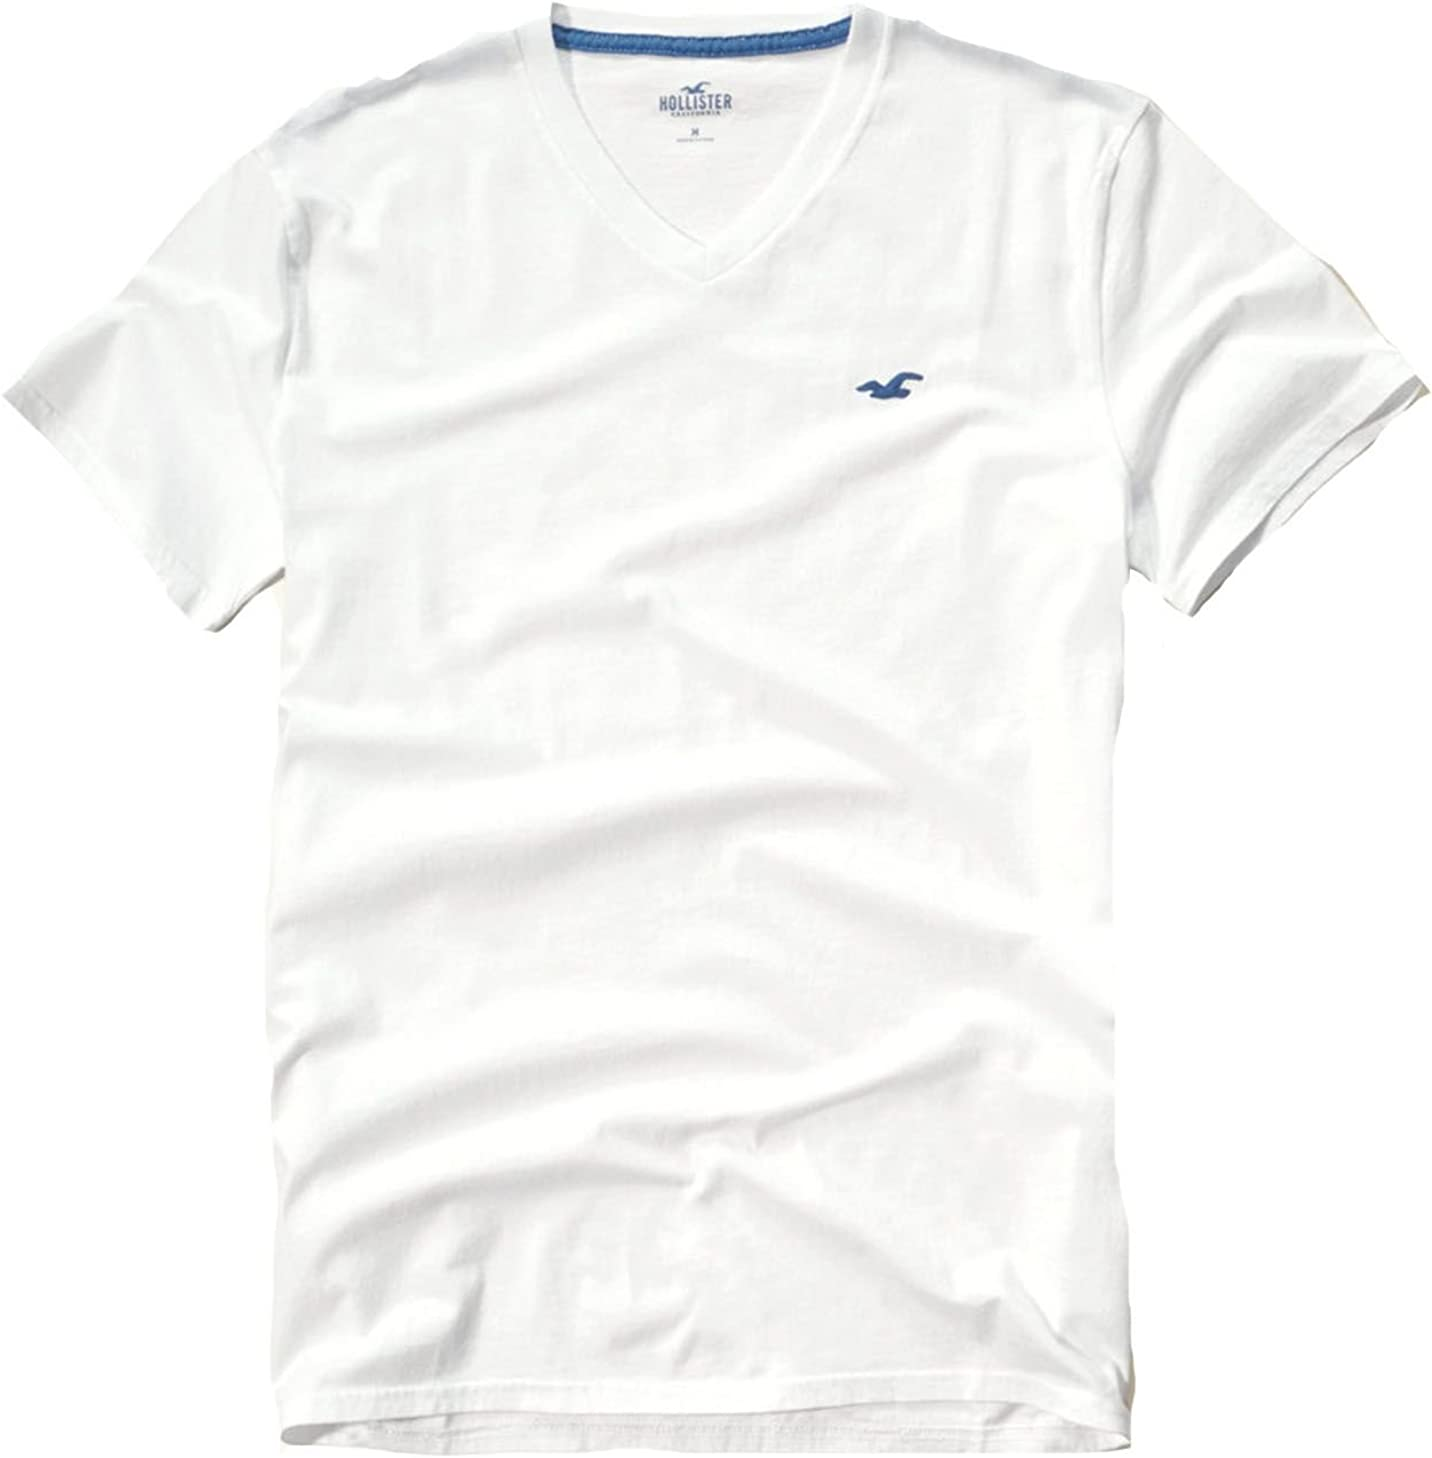 Hollister - Camiseta - para hombre multicolor White 444: Amazon.es ...